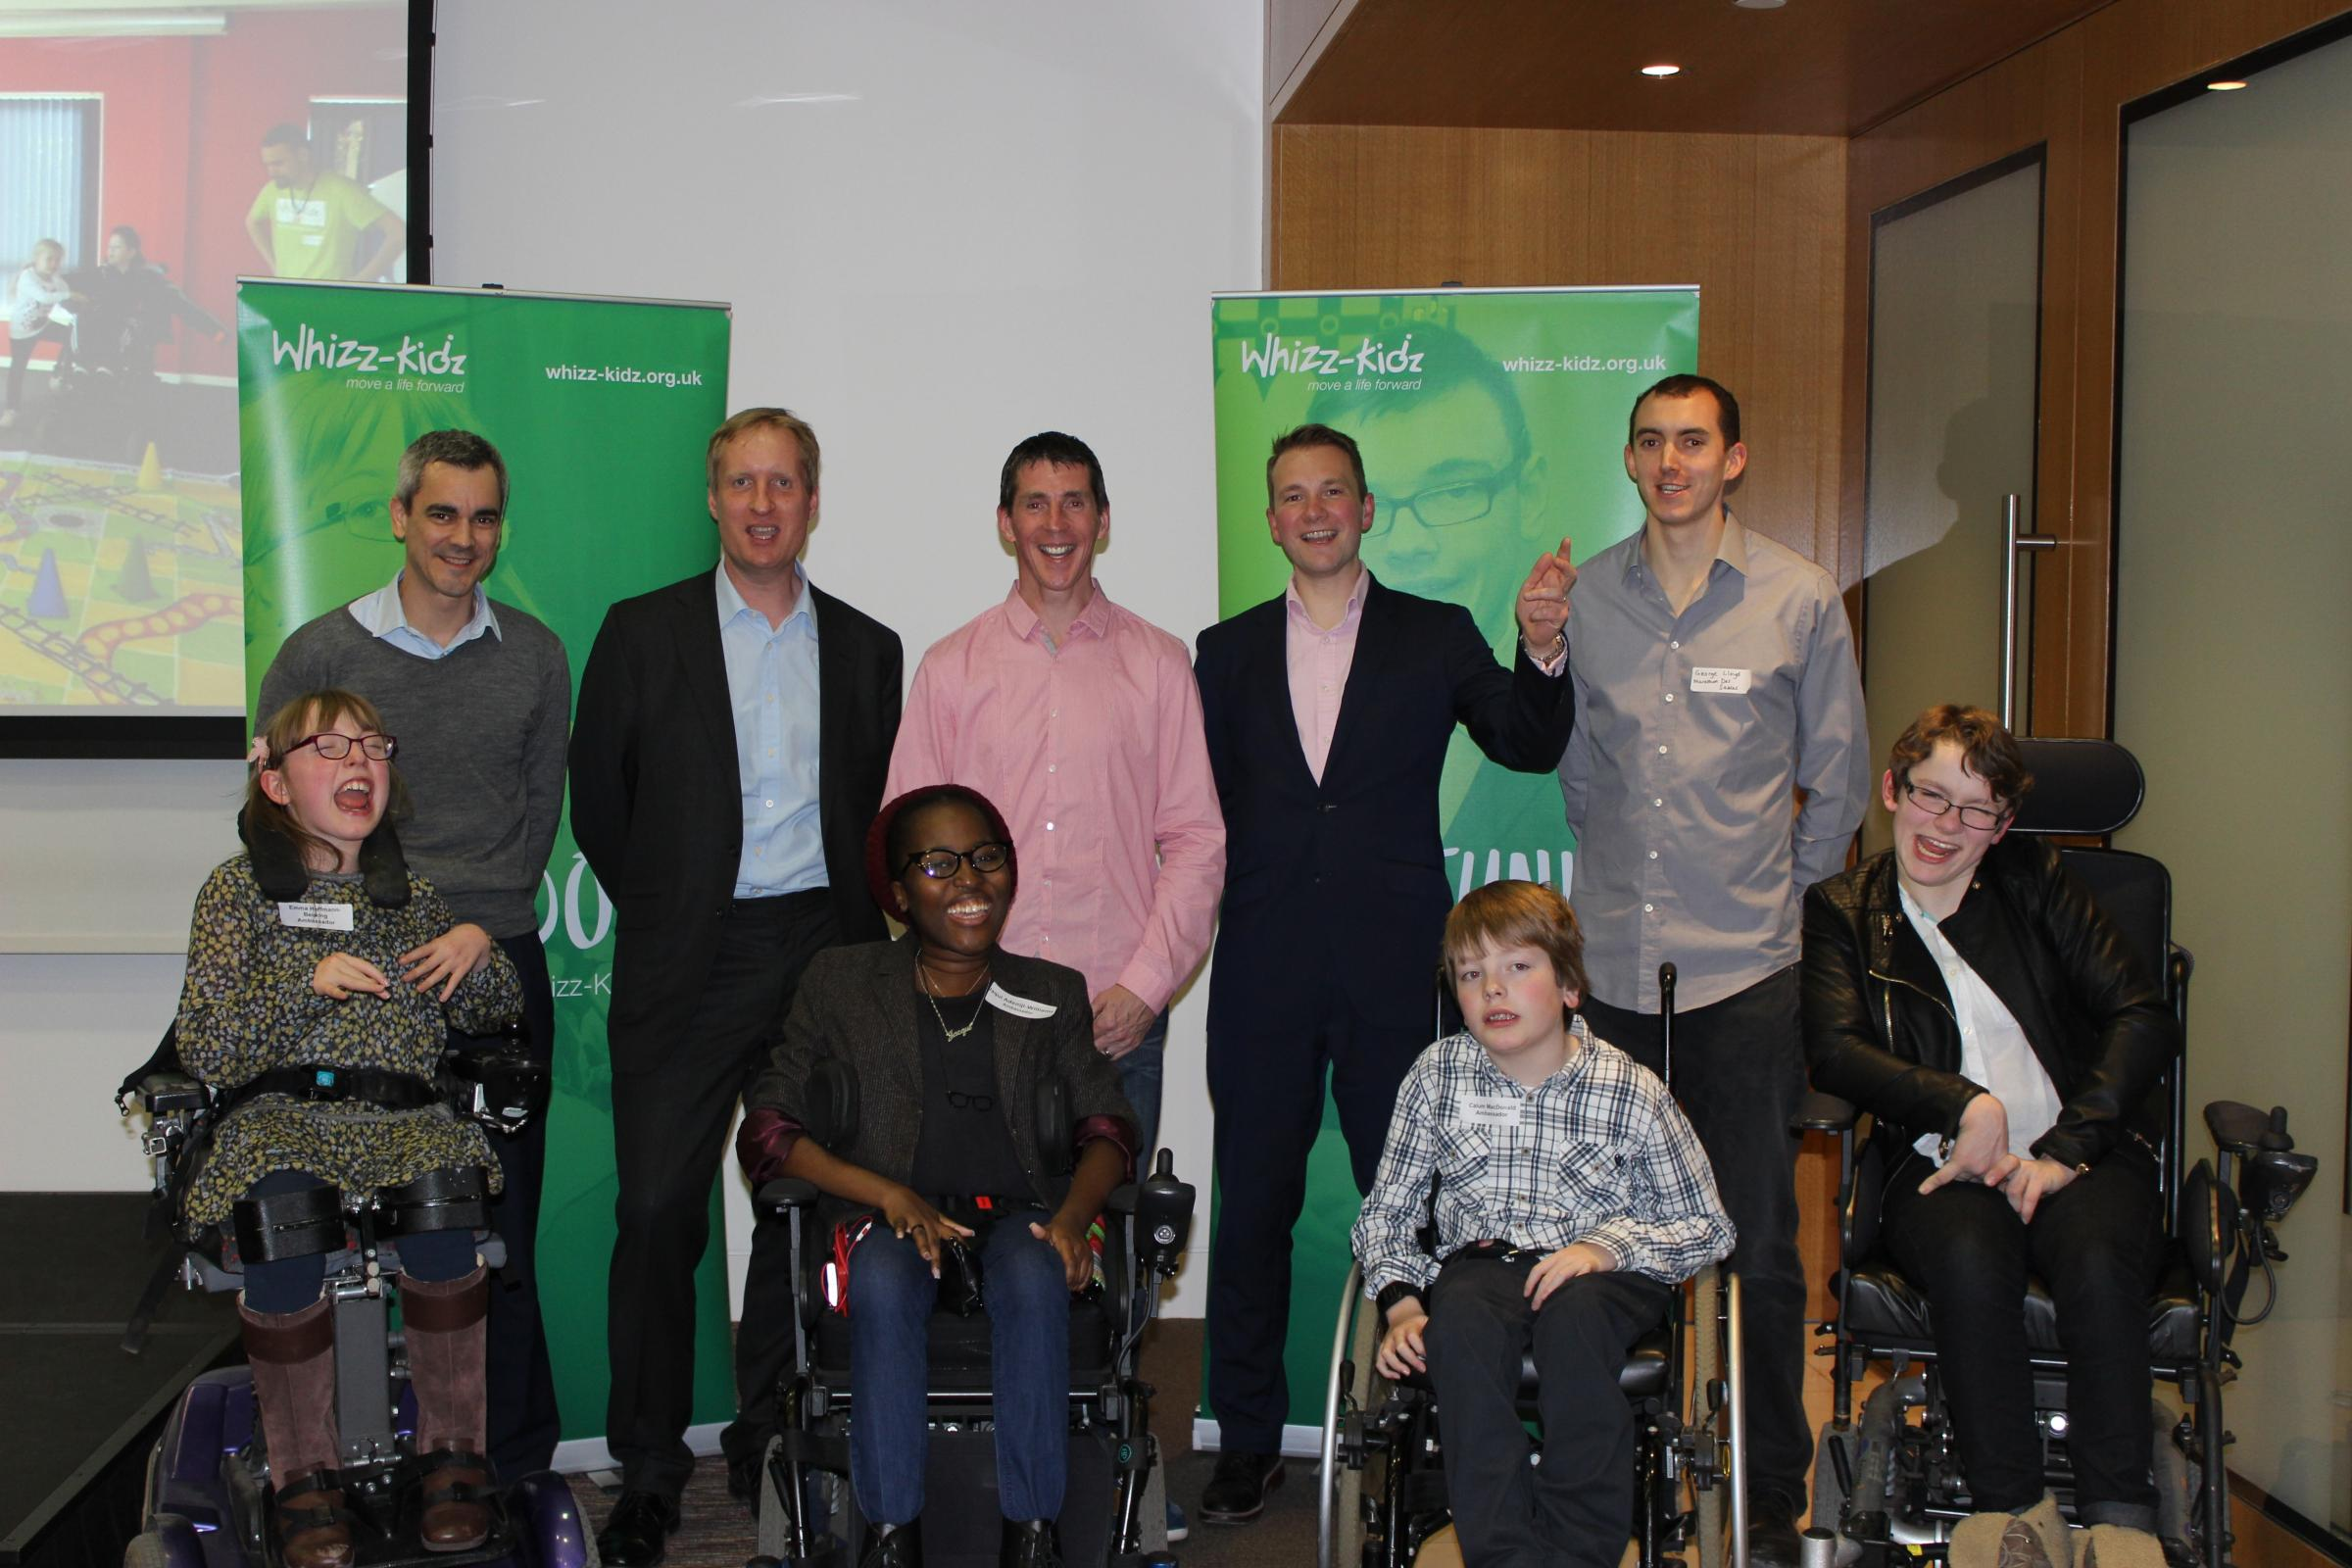 The five runners with Whizz-Kidz ambassadors